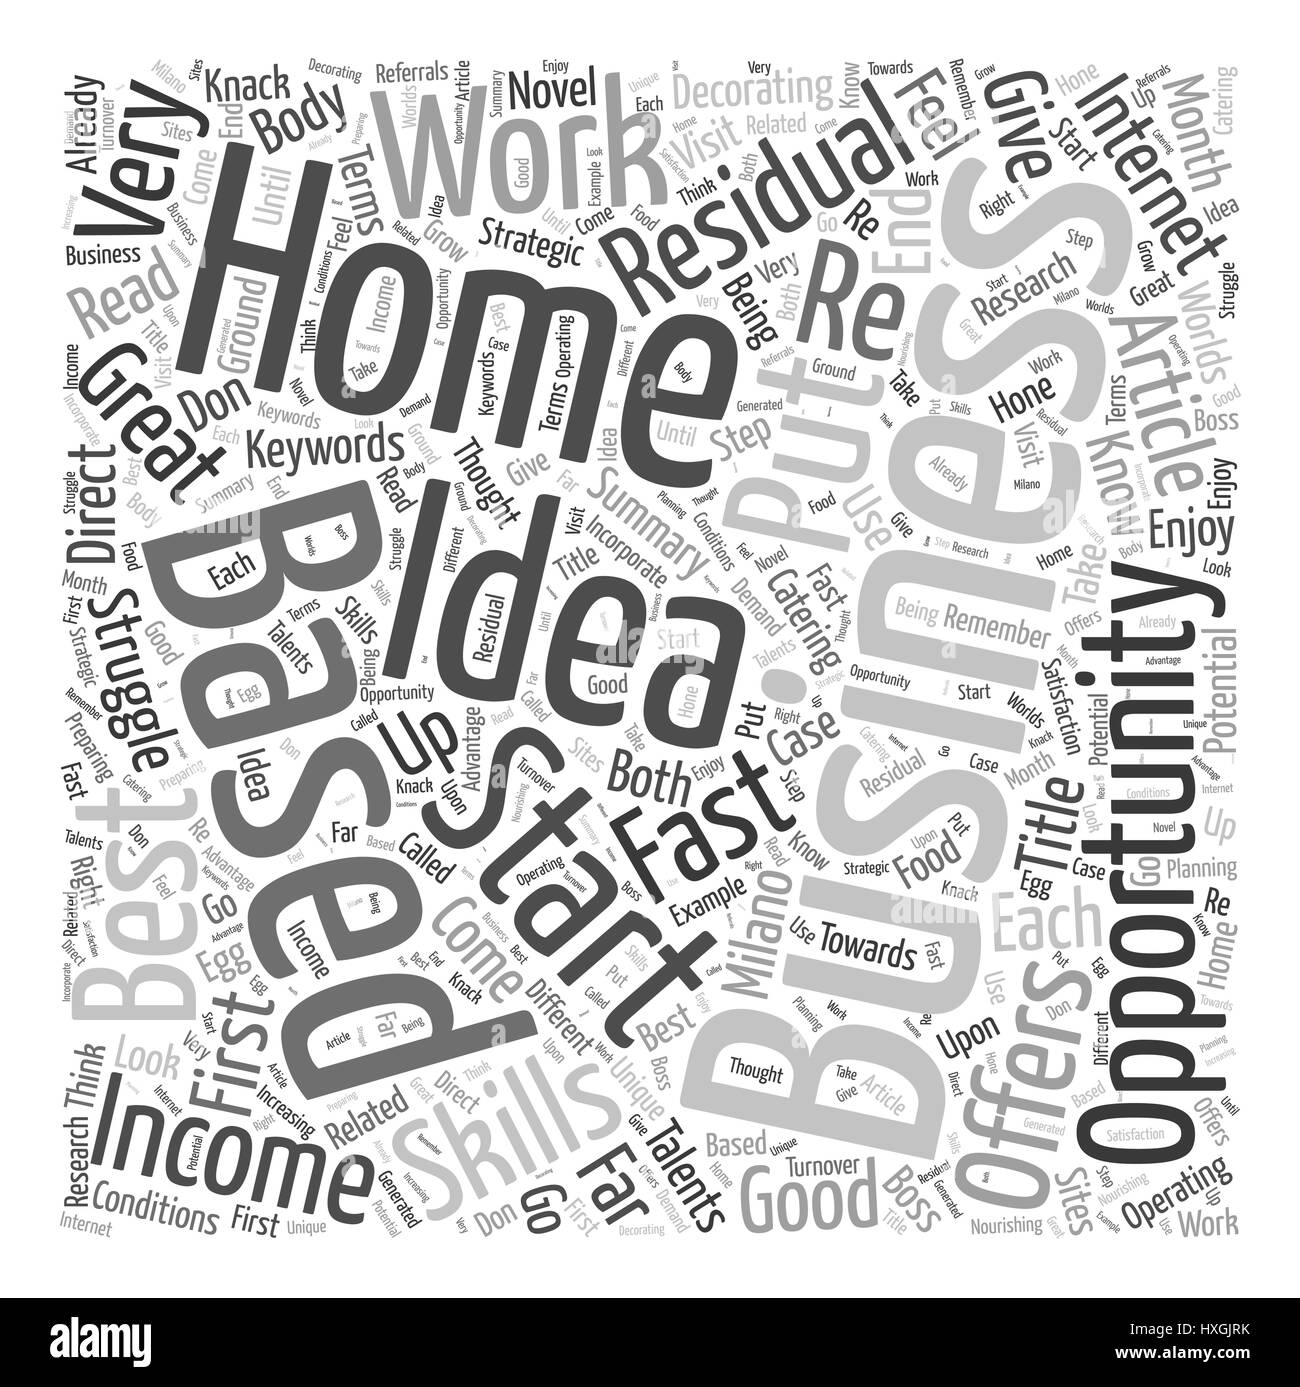 Residual Income Home Based Business Opportunity Word Cloud Concept - Stock Vector